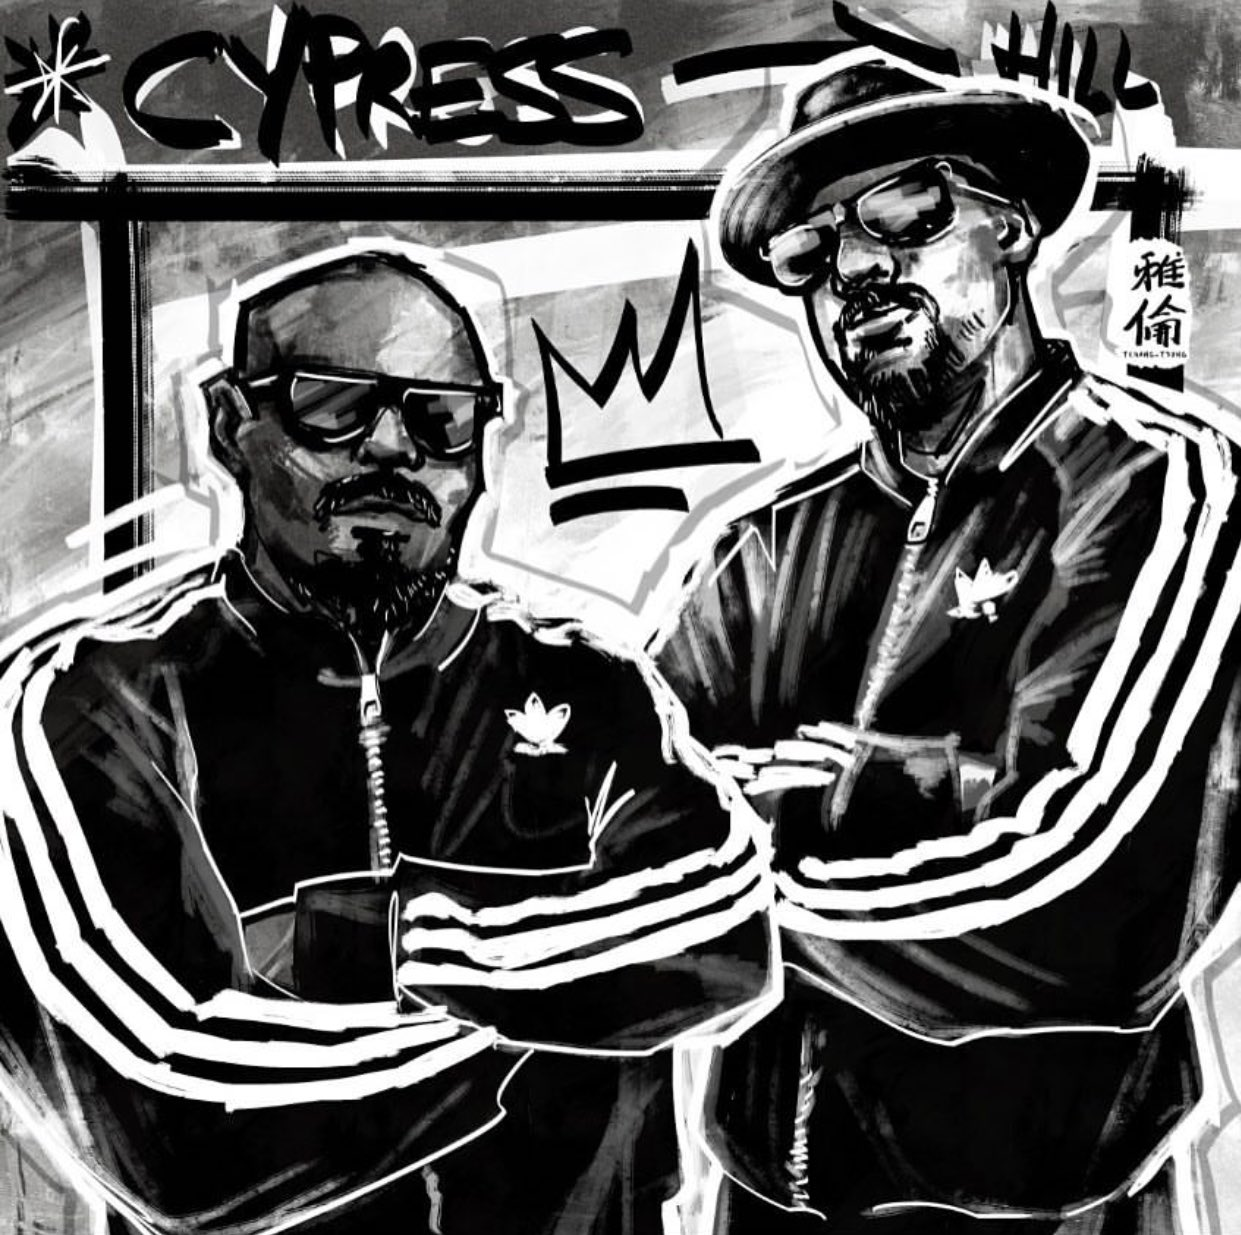 RT @OGSenDog: The return of The Hill the Takeover 🤘🏾☠️ https://t.co/MCDMiWPGjb